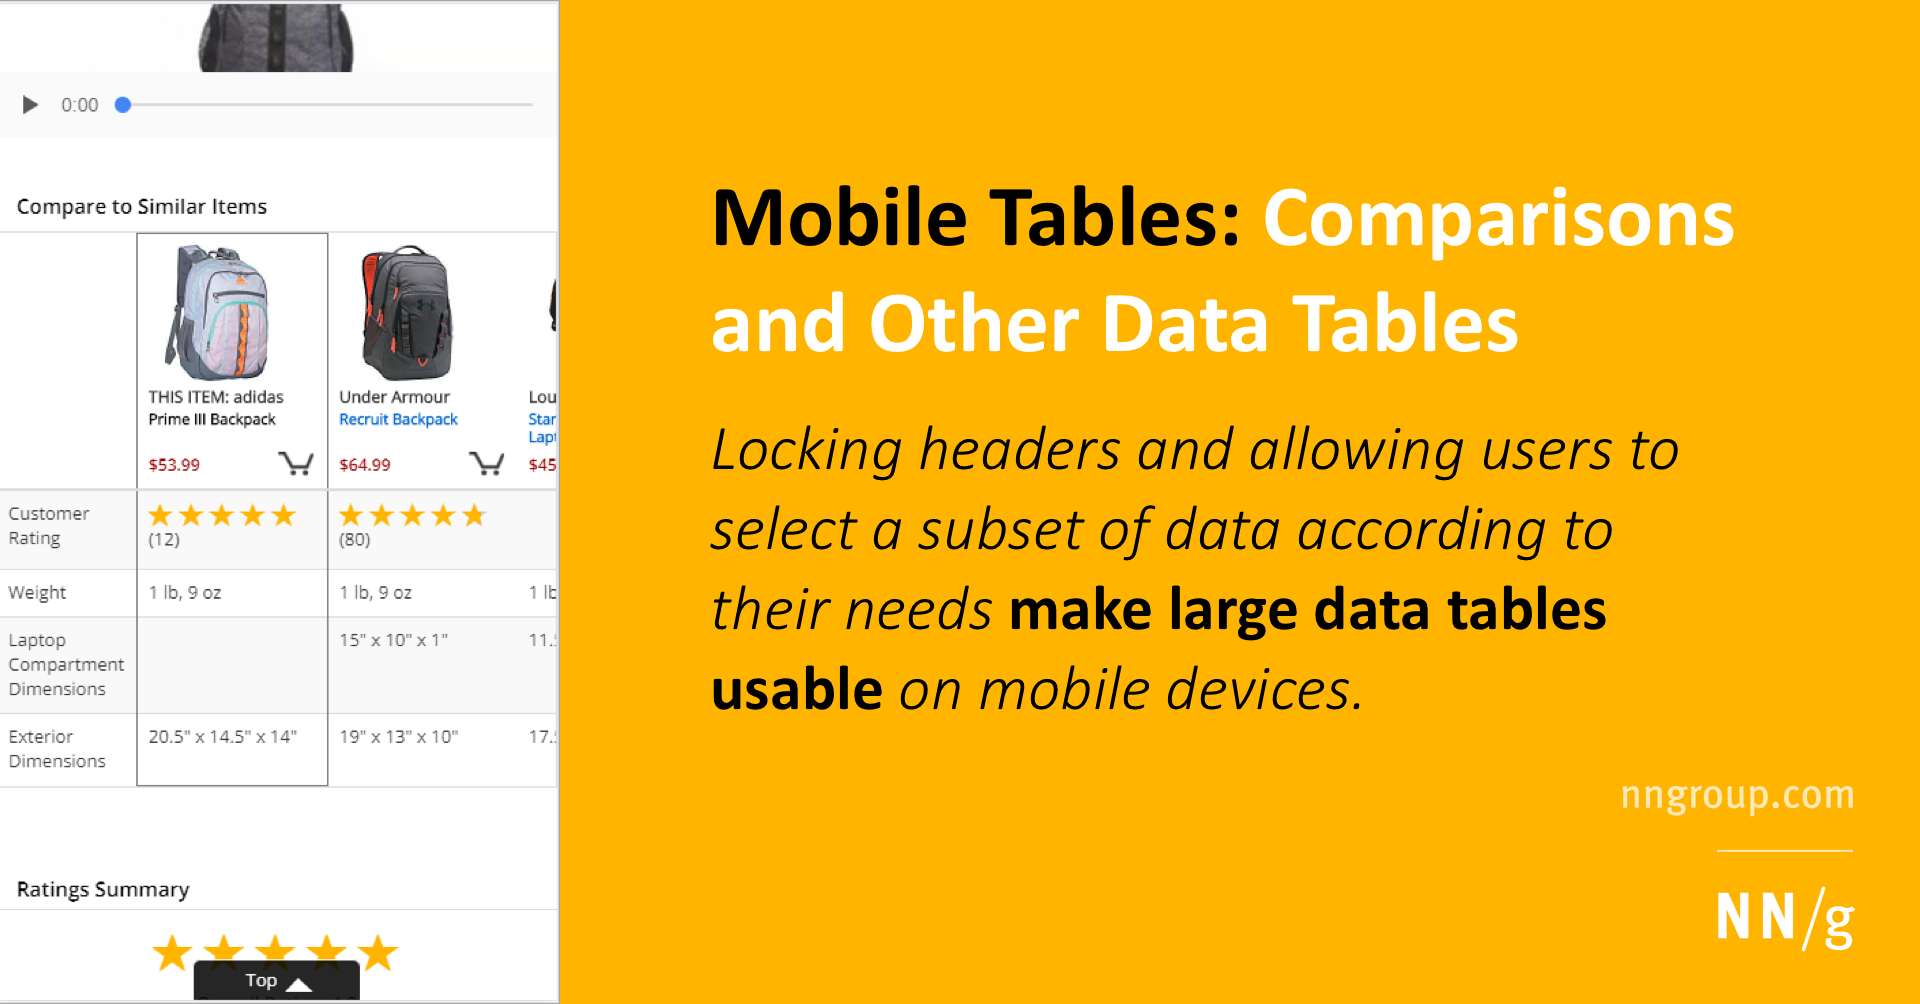 Mobile Tables: Comparisons and Other Data Tables